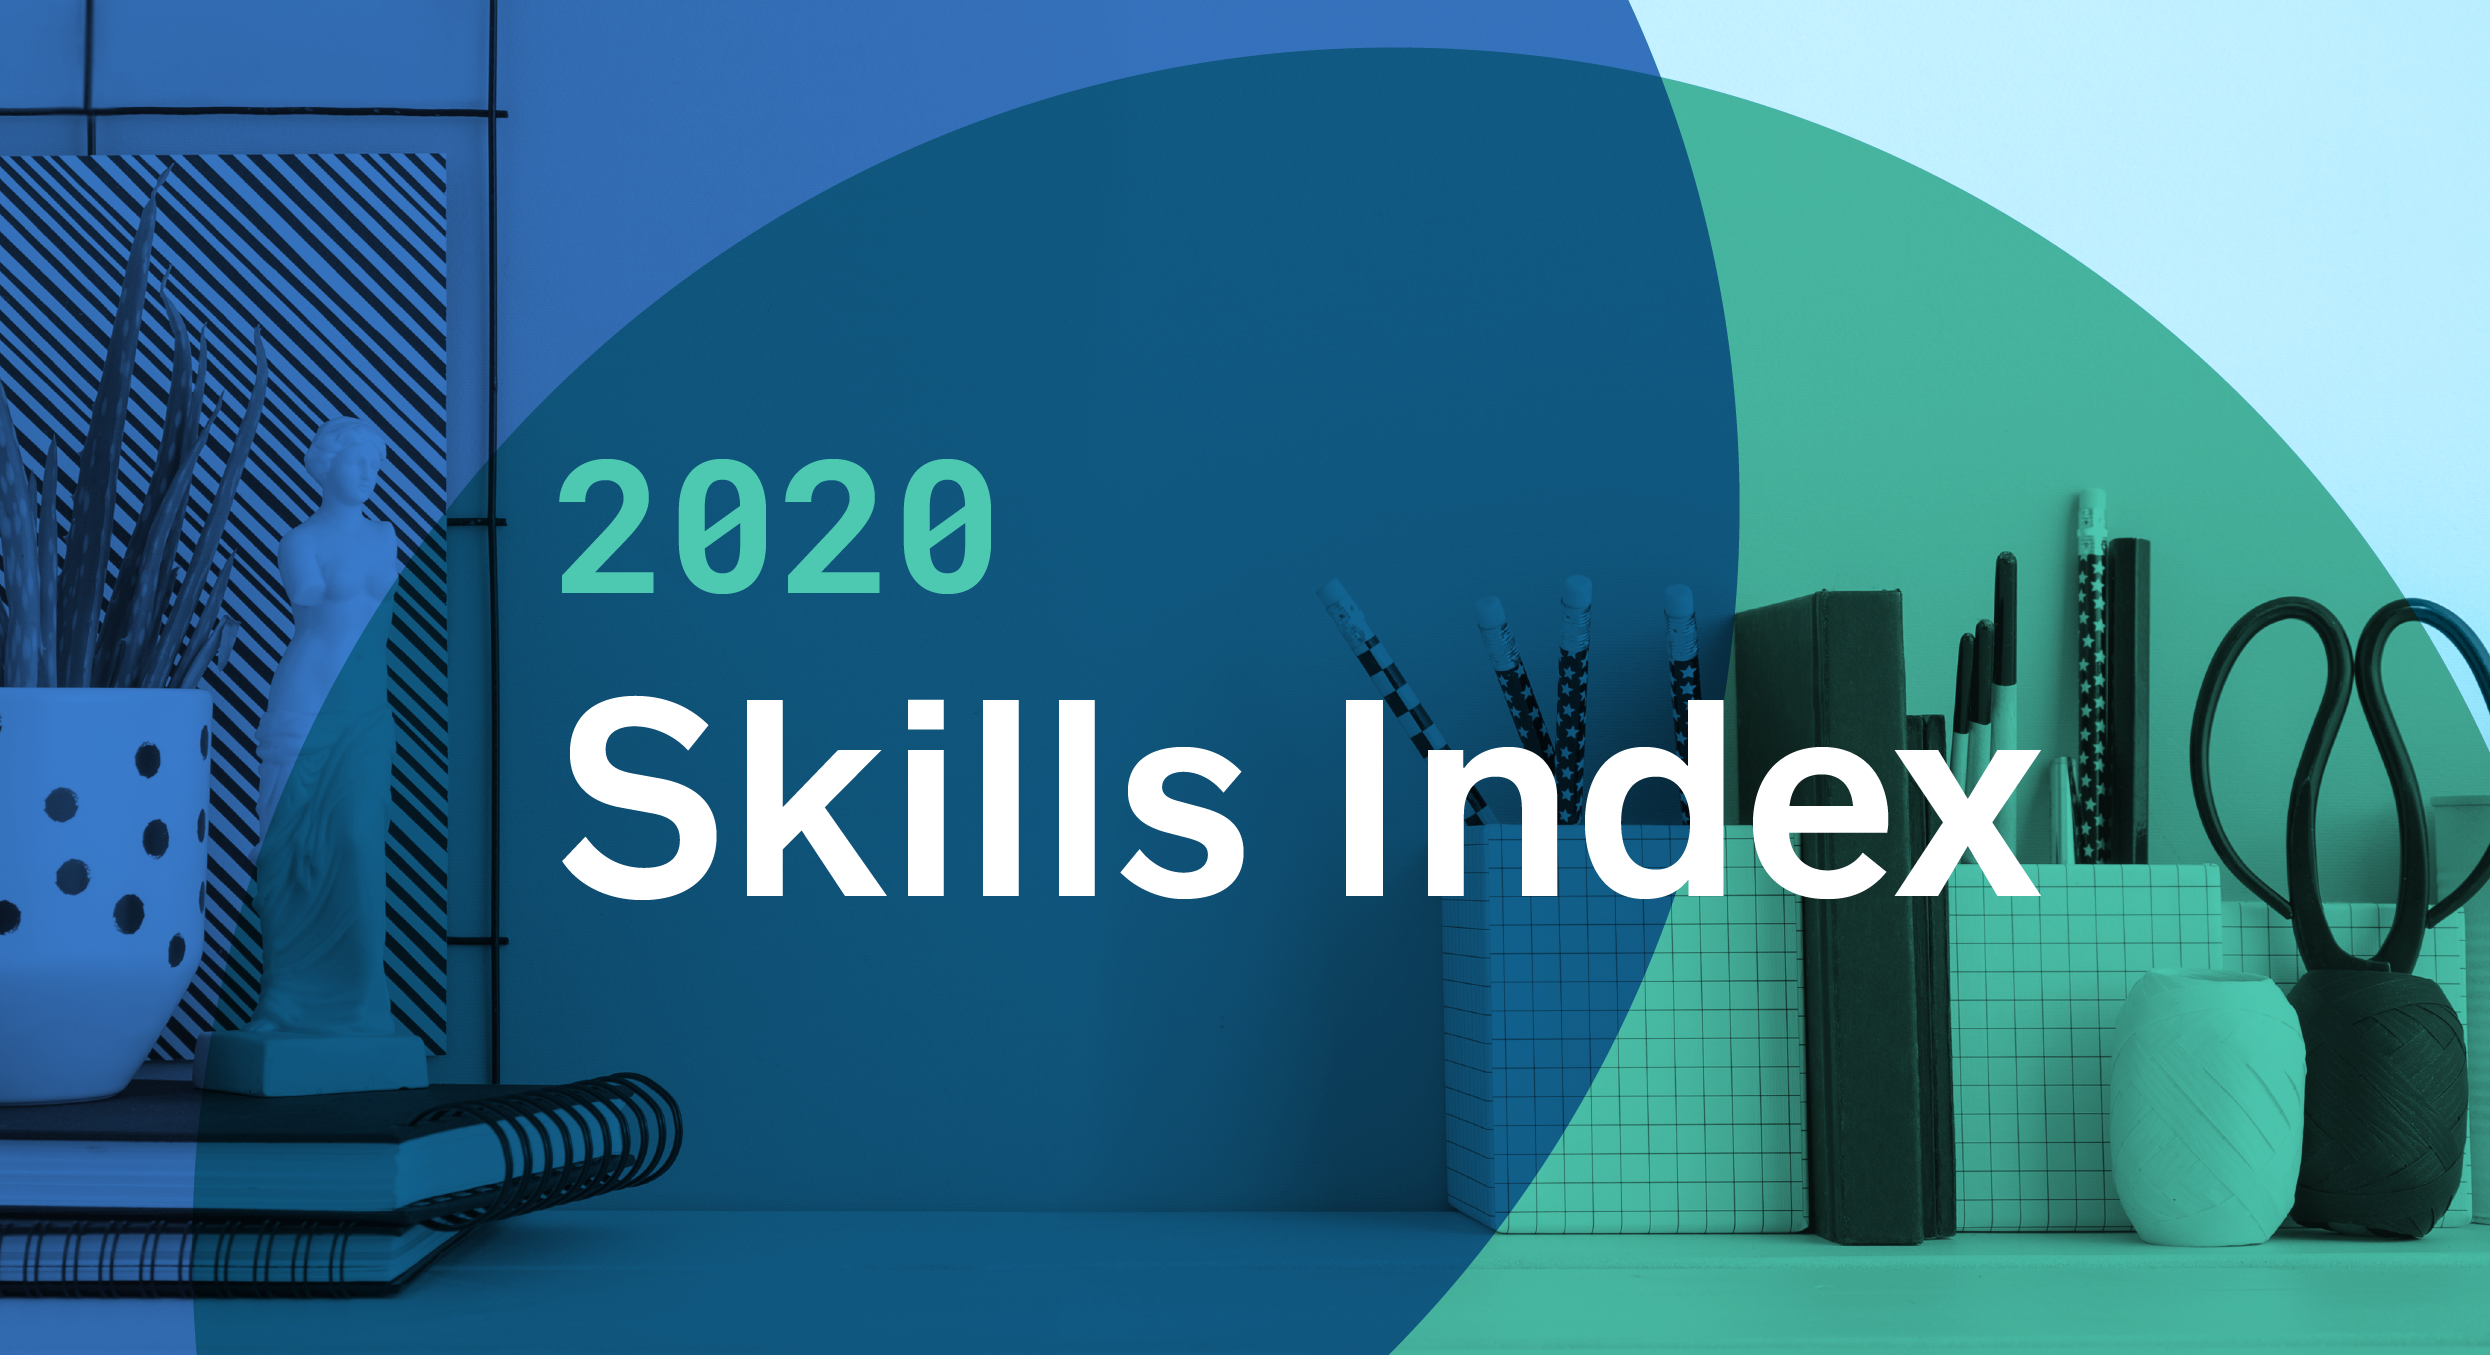 The BTG 2020 Skills Index